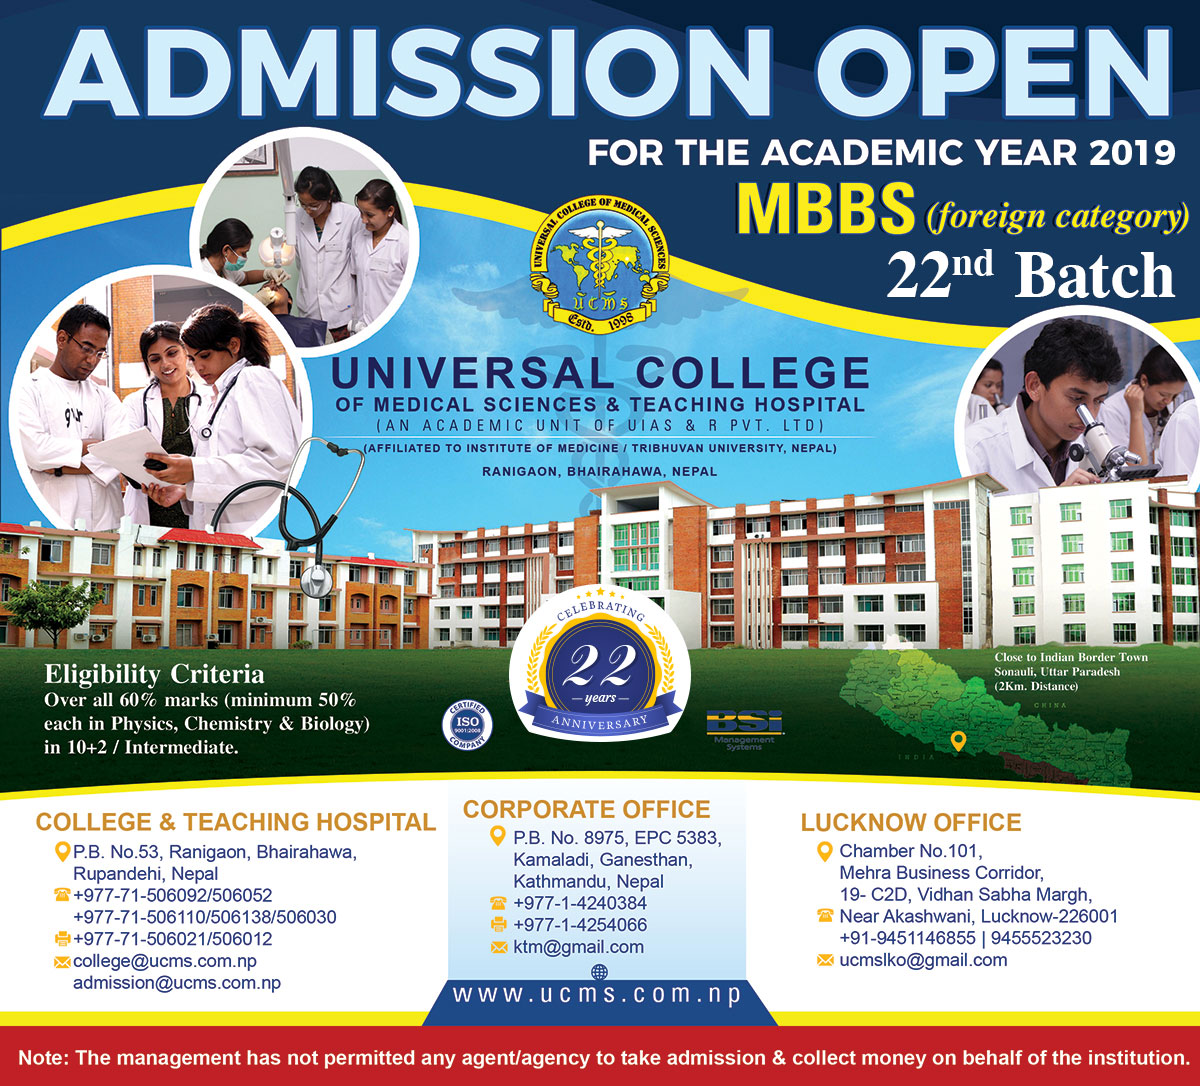 UCMS – Universal College of Medical Sciencs